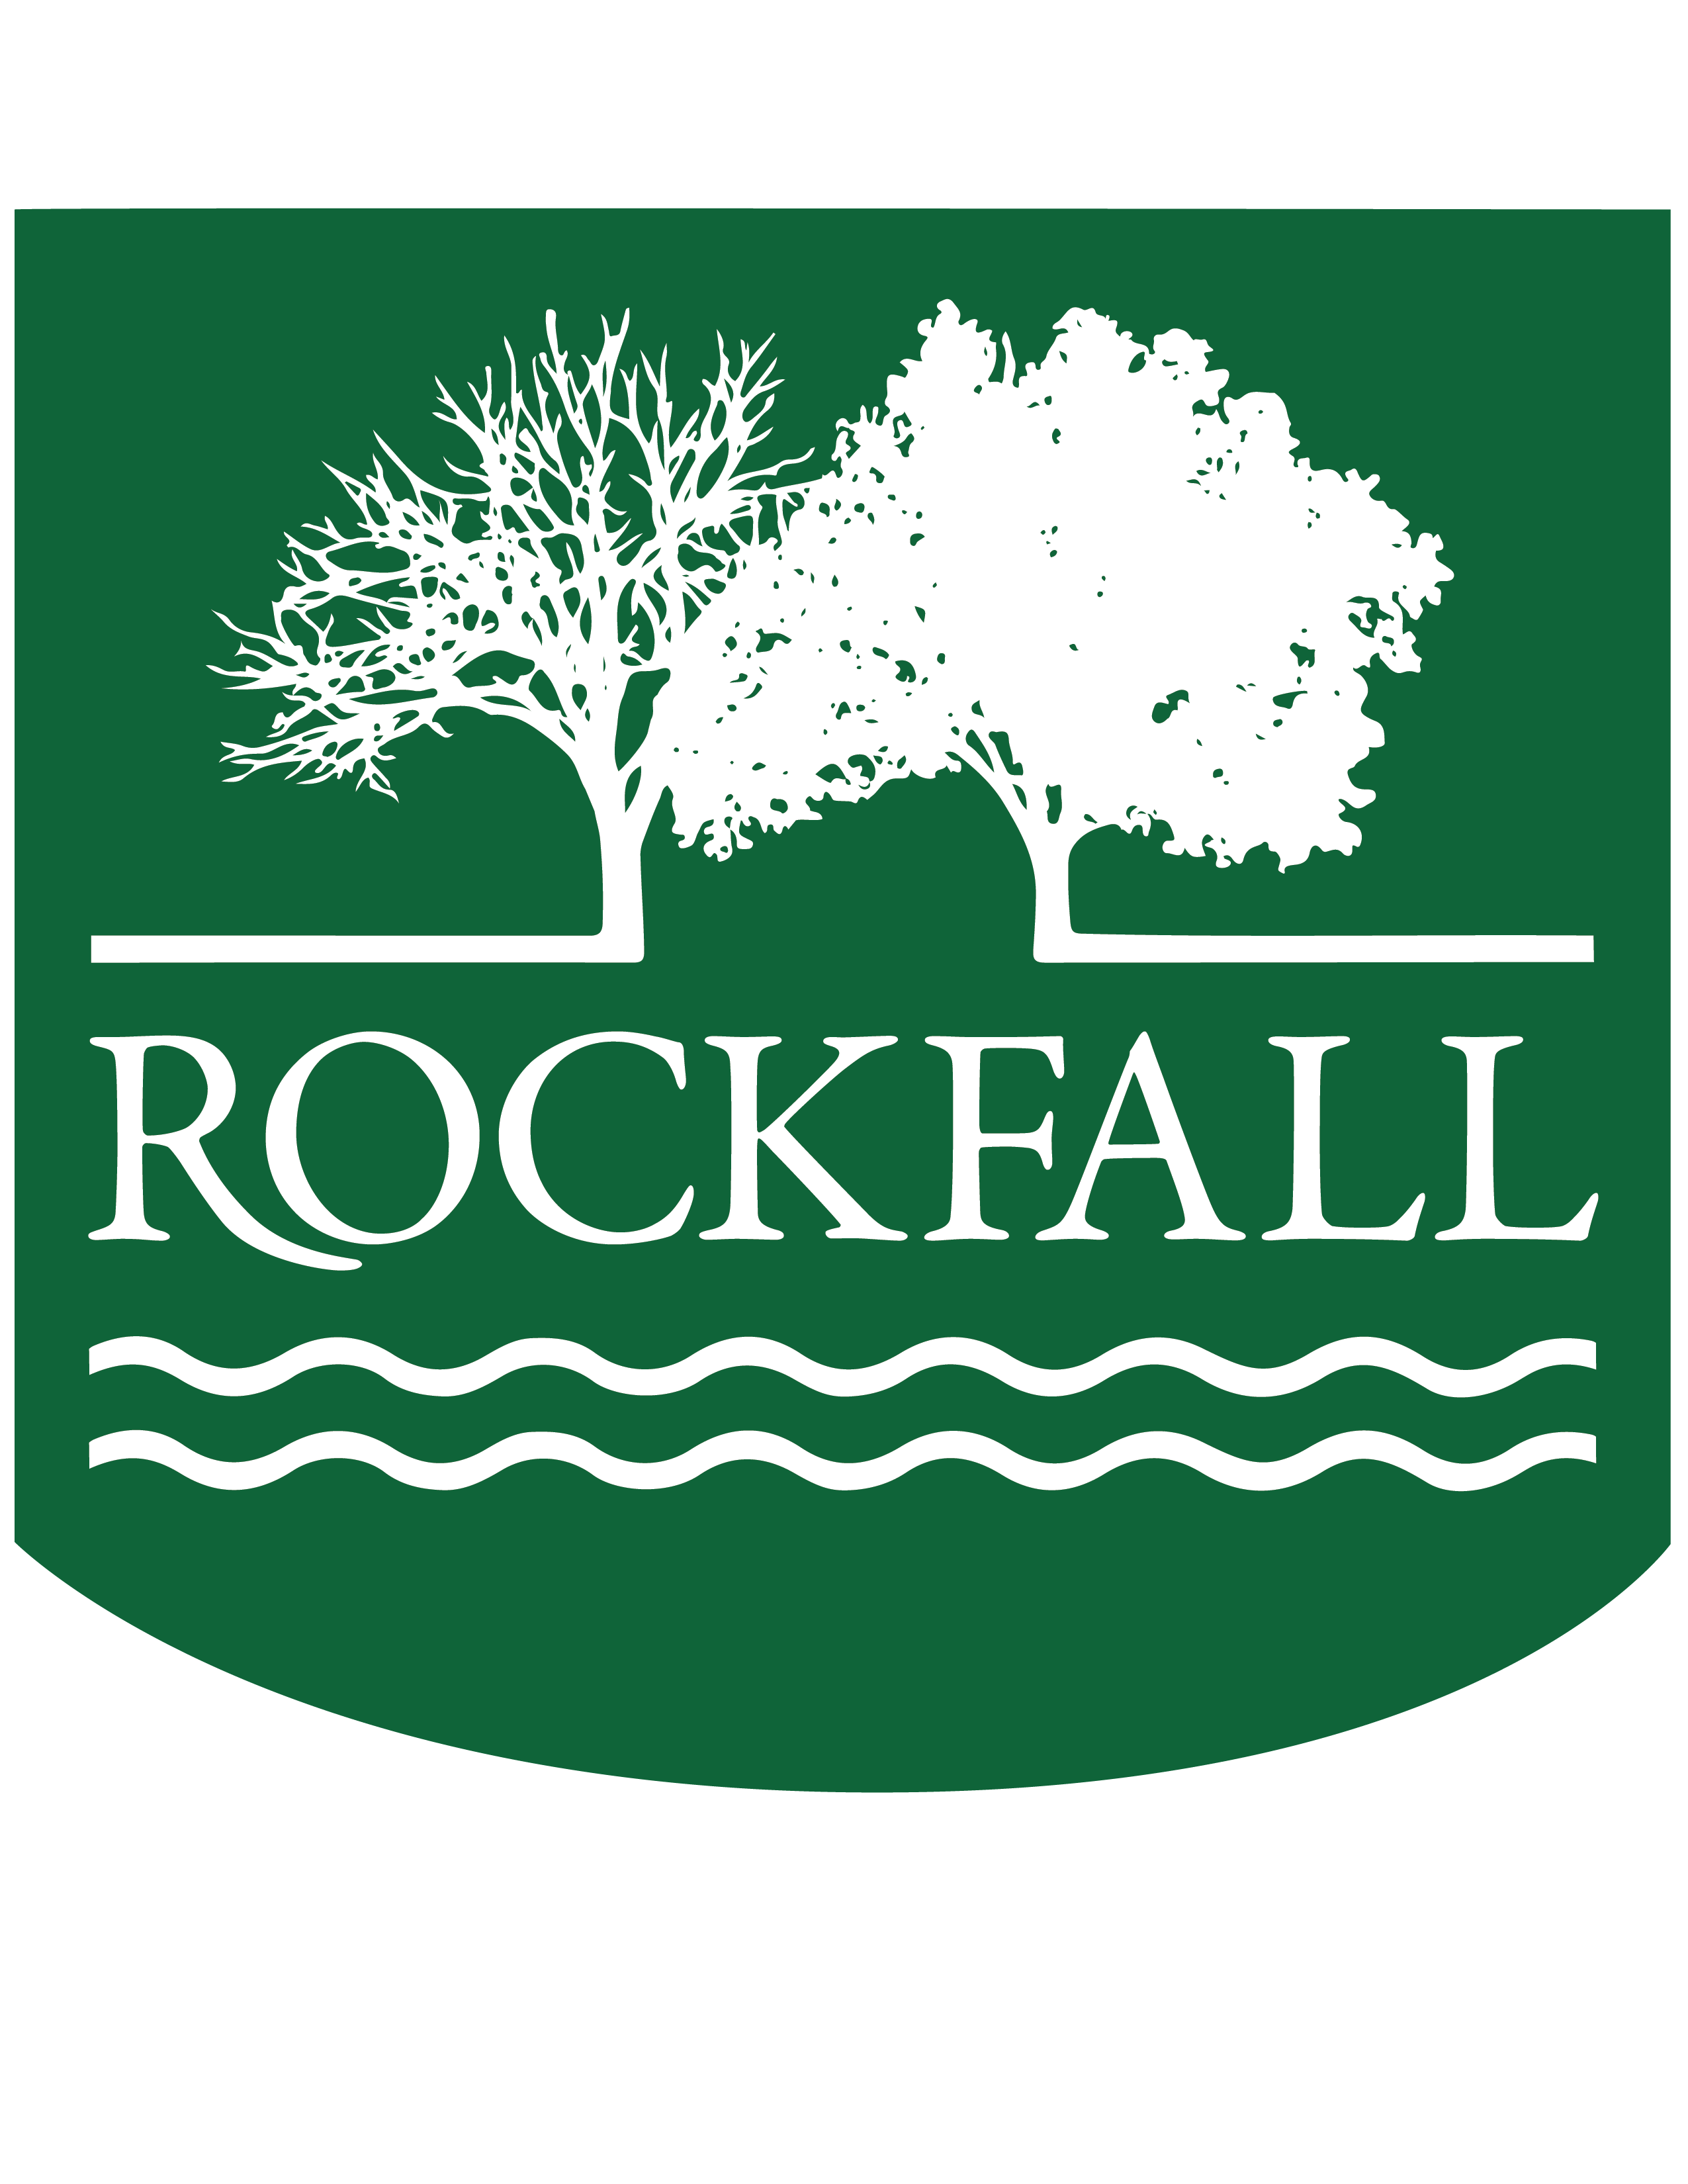 The Rockwell Foundation